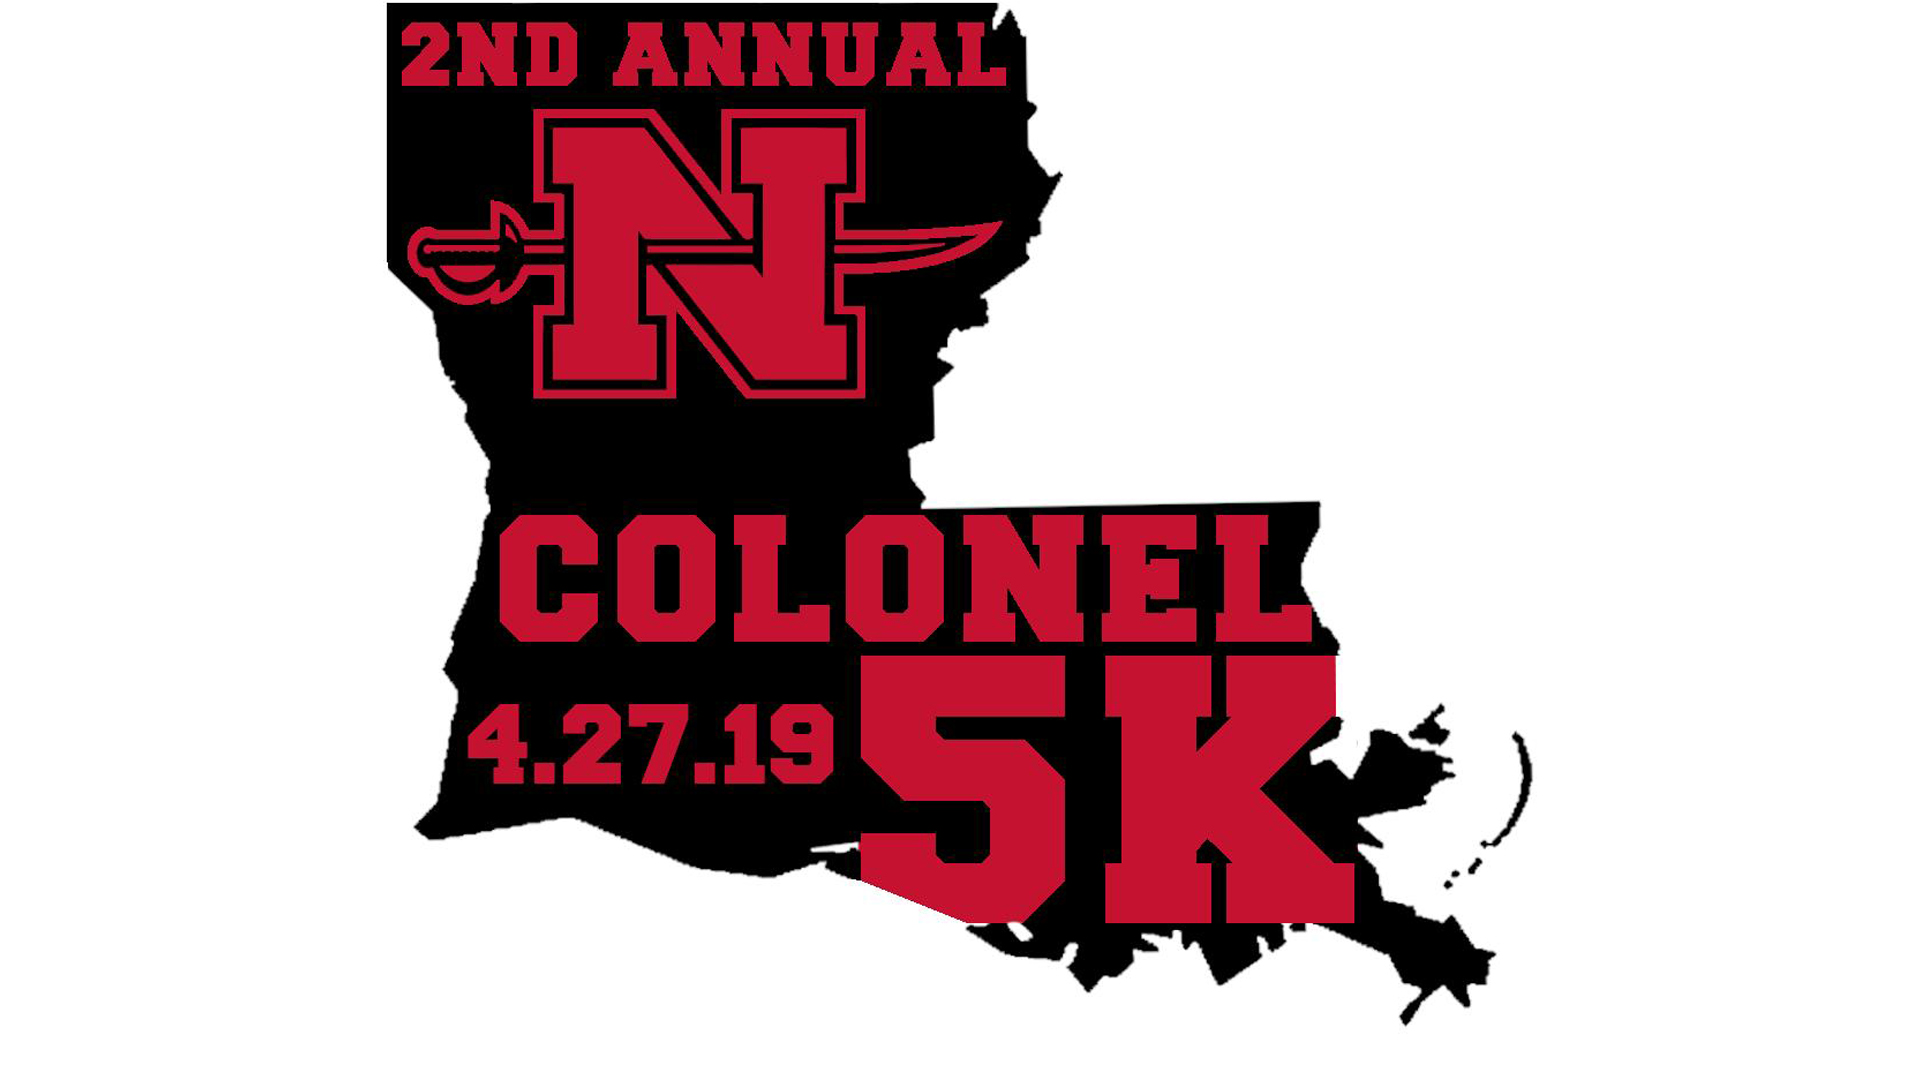 6596b201 2nd Annual Colonel 5k set for April 27 - Nicholls State University ...